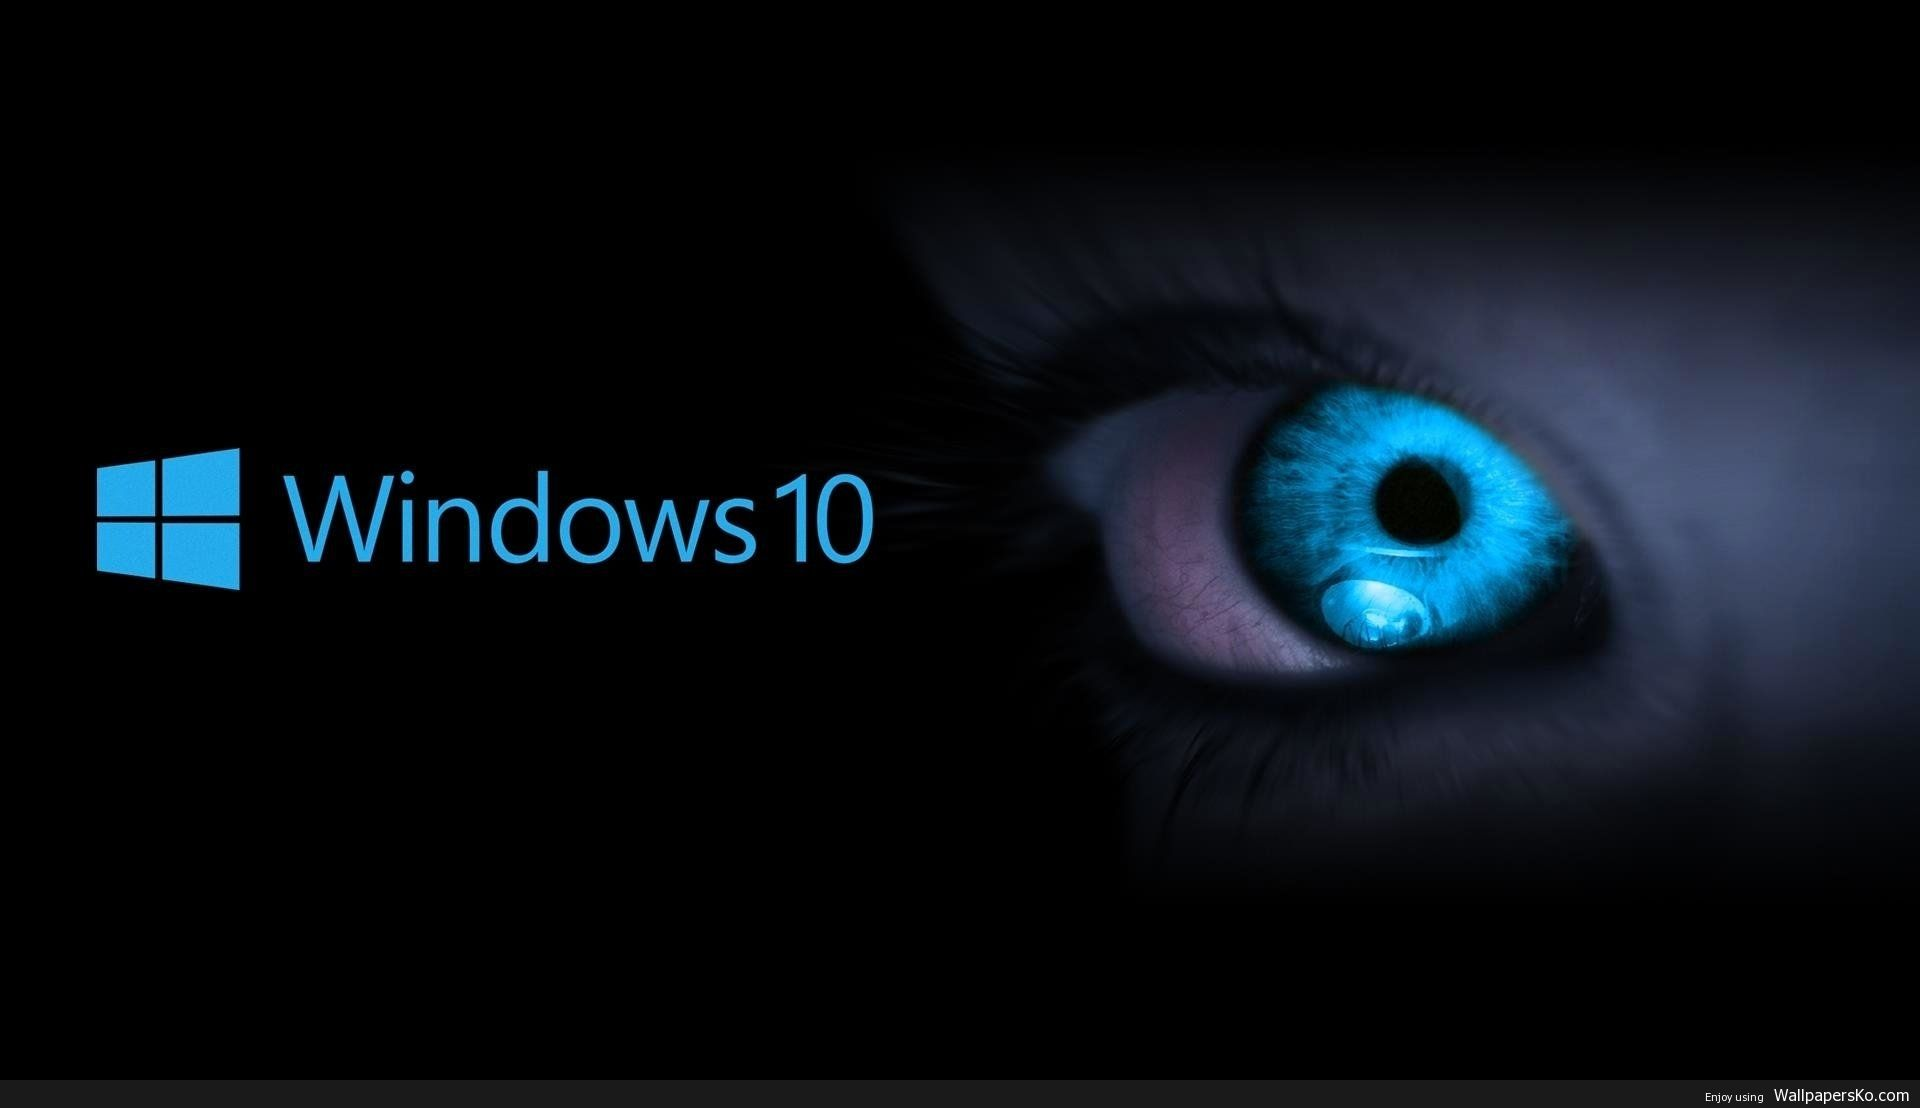 Windows 10 Wallpapers Hd Http Wallpapersko Com Windows 10 Wallpapers Hd Html Hd Wallpapers Dow Windows Wallpaper Wallpaper Windows 10 Hd Wallpaper Desktop